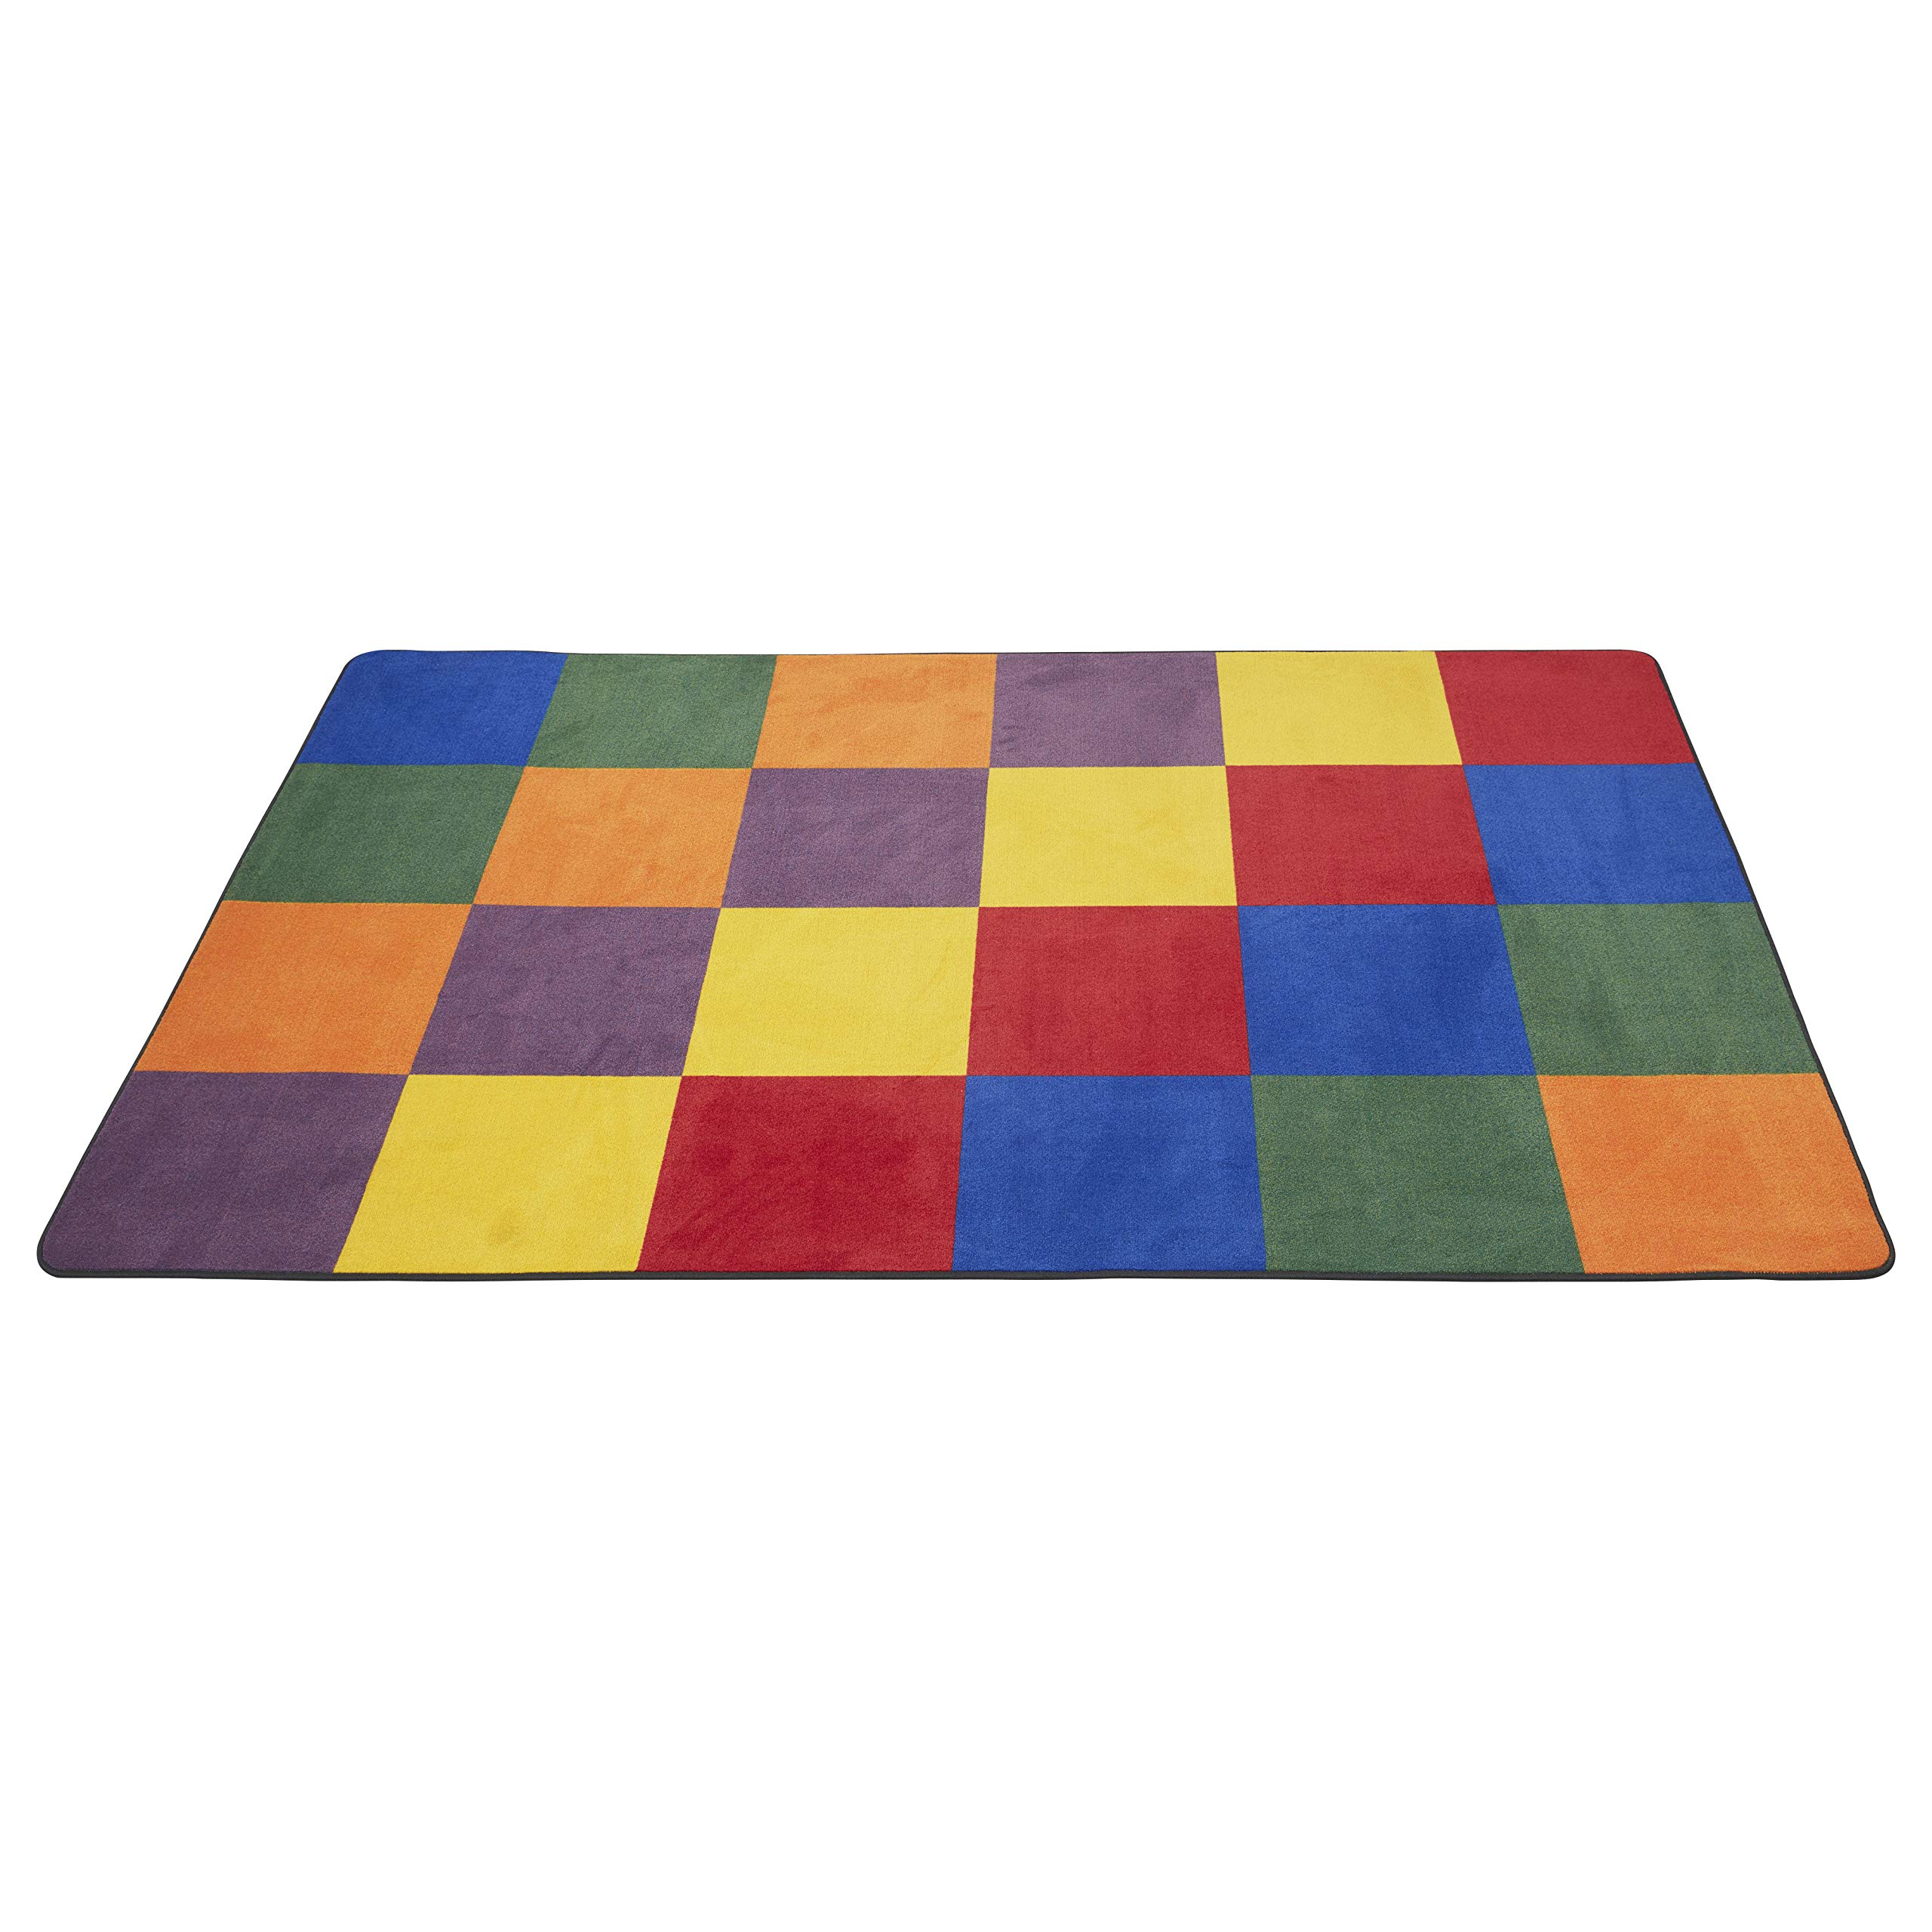 ECR4Kids Patchwork Seating Area Rug for Children, Kids' Educational Carpet for School/Classroom/Home, 6 x 9 Foot Rectangle